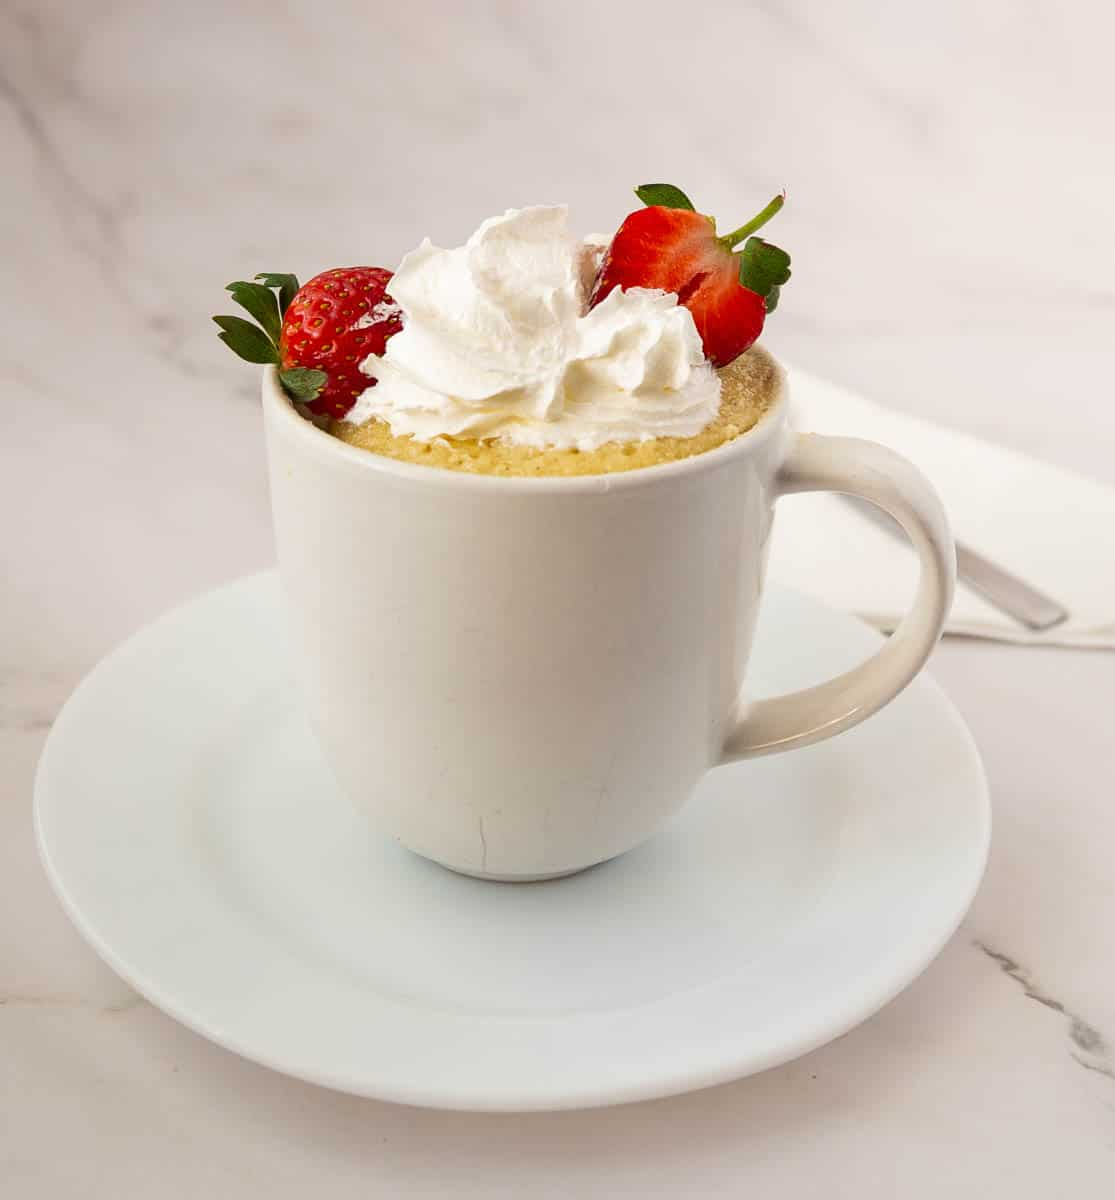 Vanilla cake in a mug topped with whipped cream